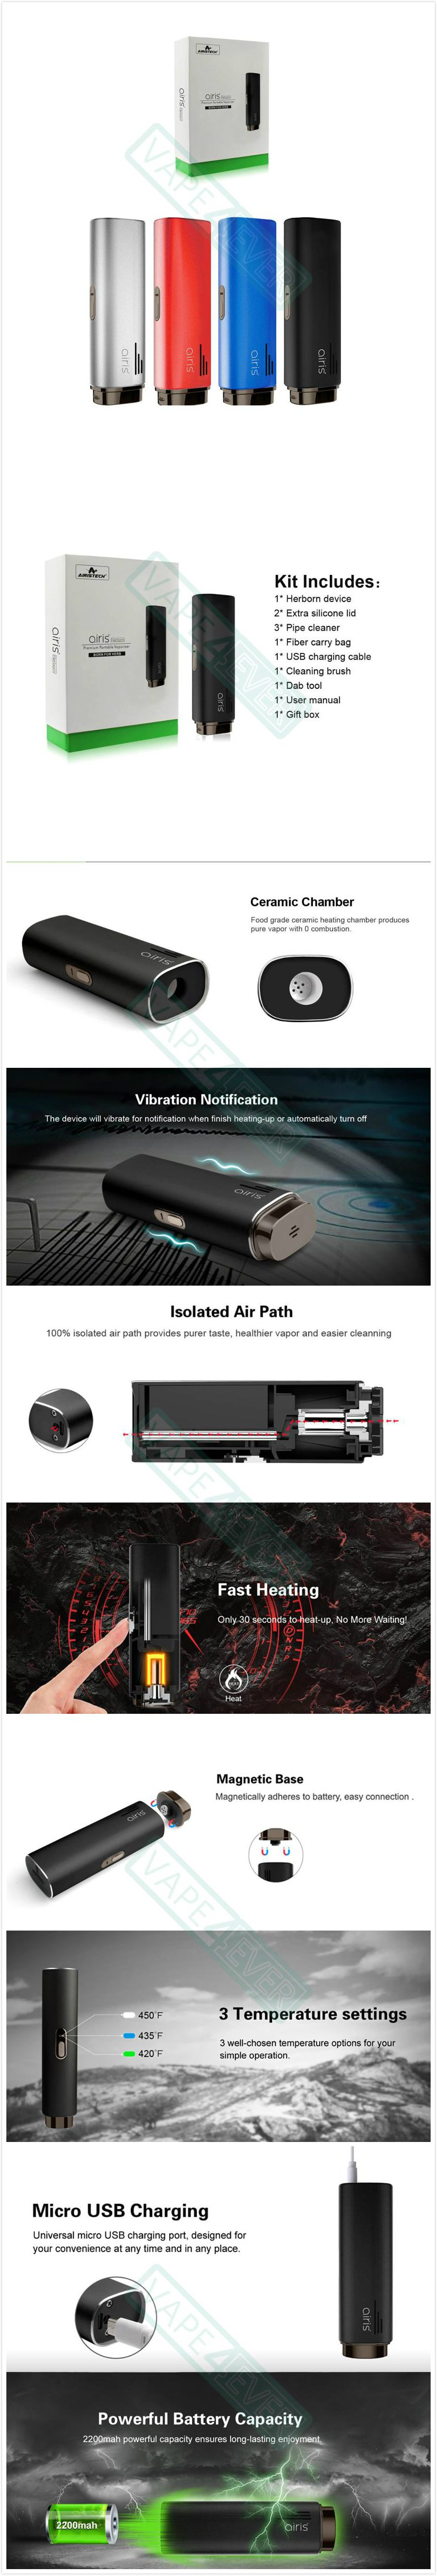 Airistech Herborn Vaporizer Kit 2200Mah Herb Vape Pen Instruction